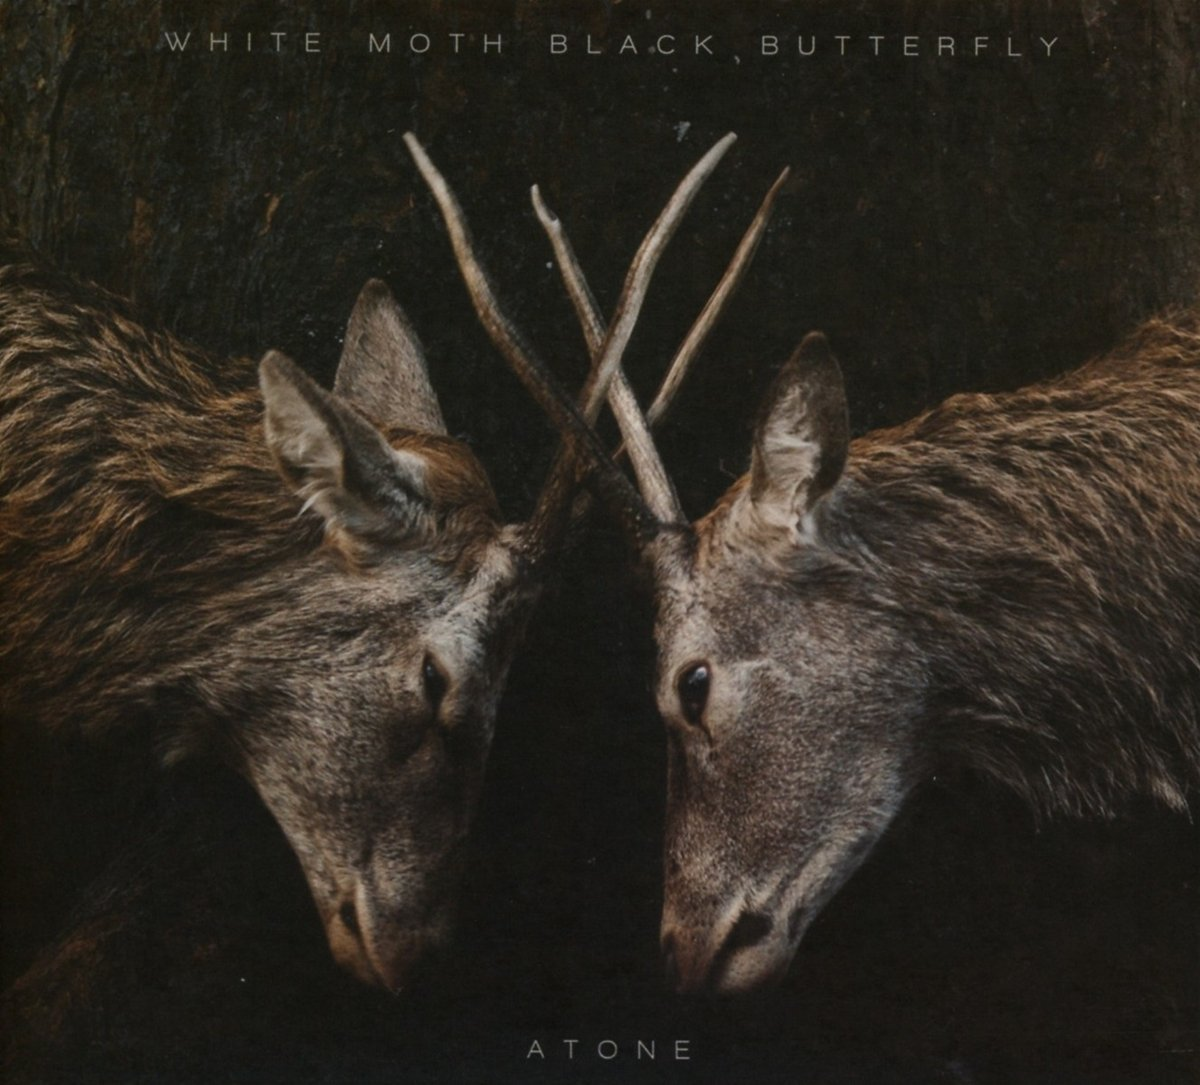 Atone (LP) by White Moth Black Butterfly image